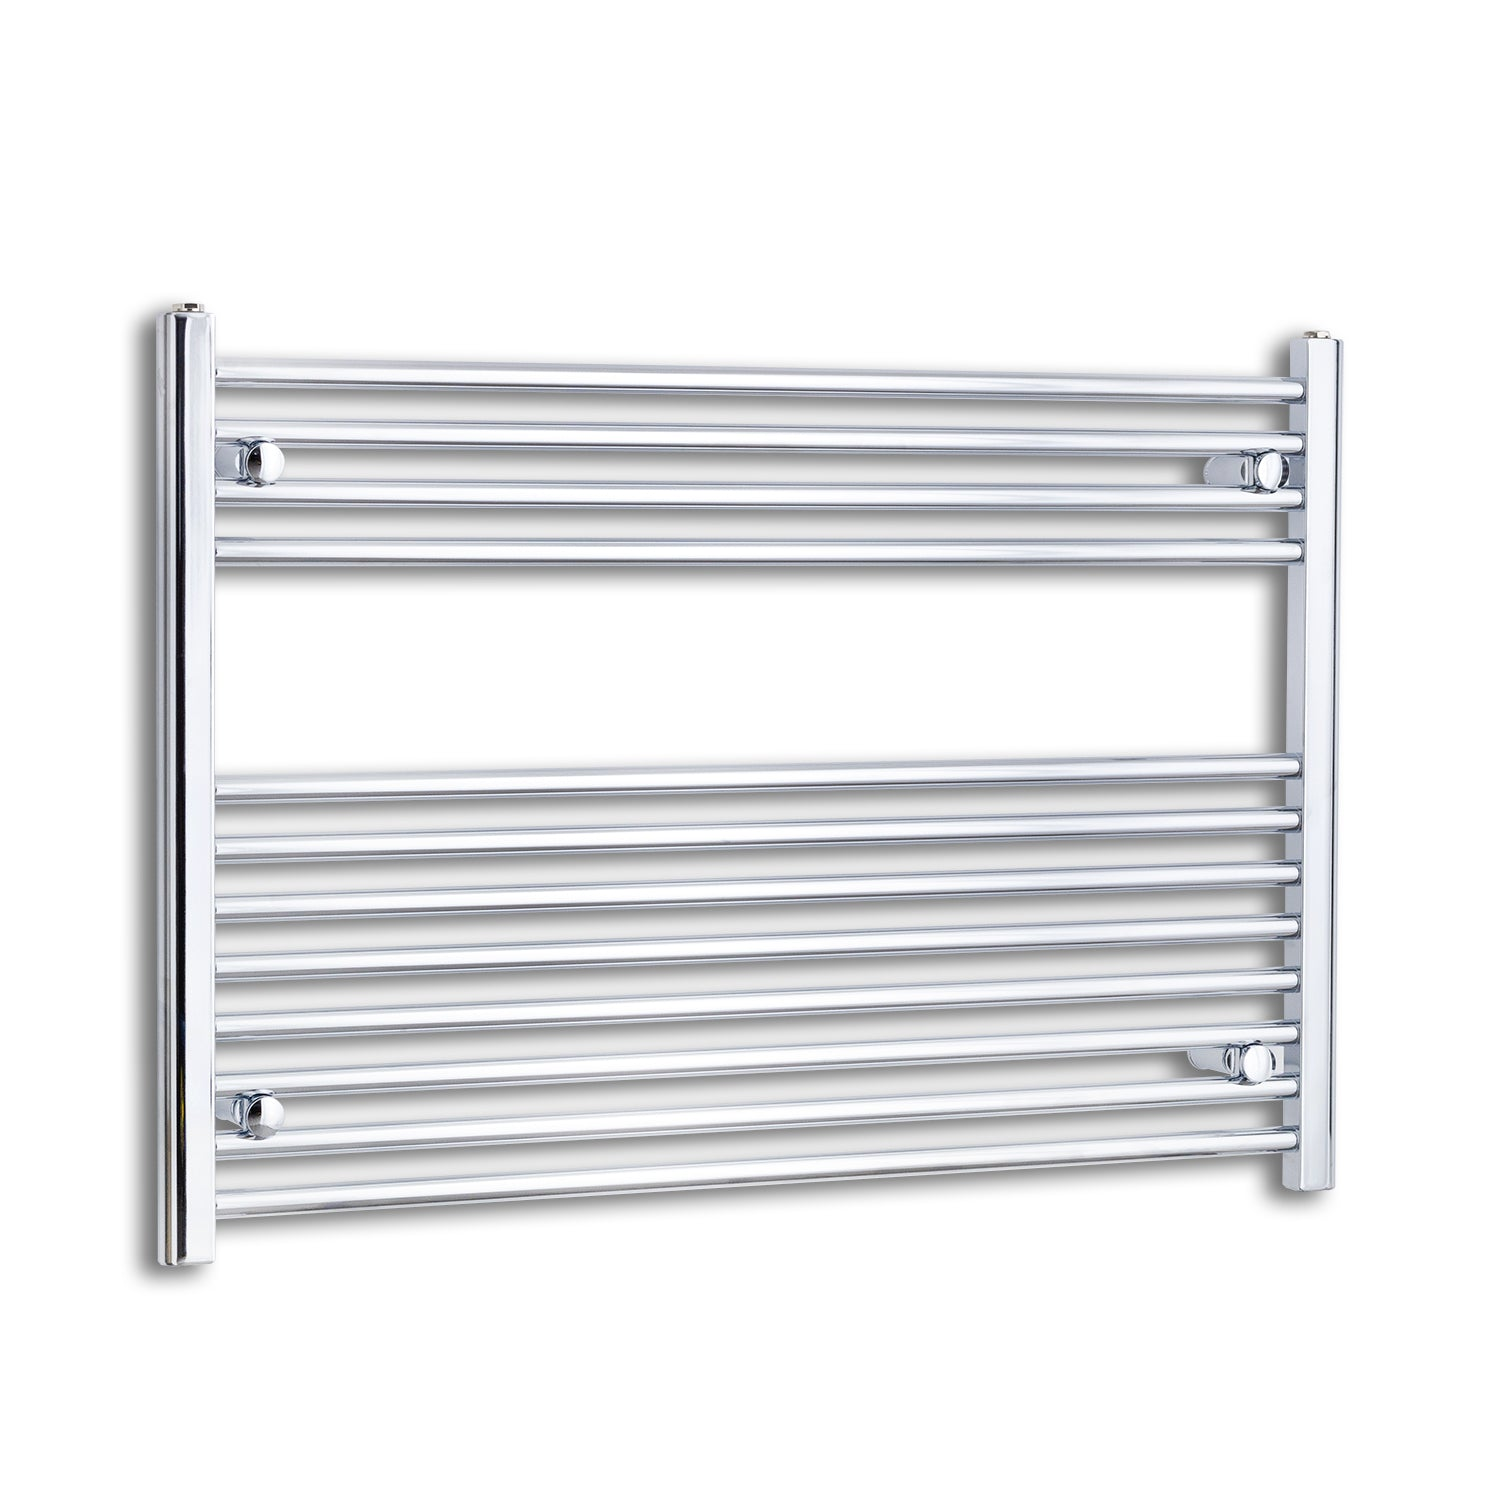 1000mm Wide 700mm High Chrome Towel Rail Radiator